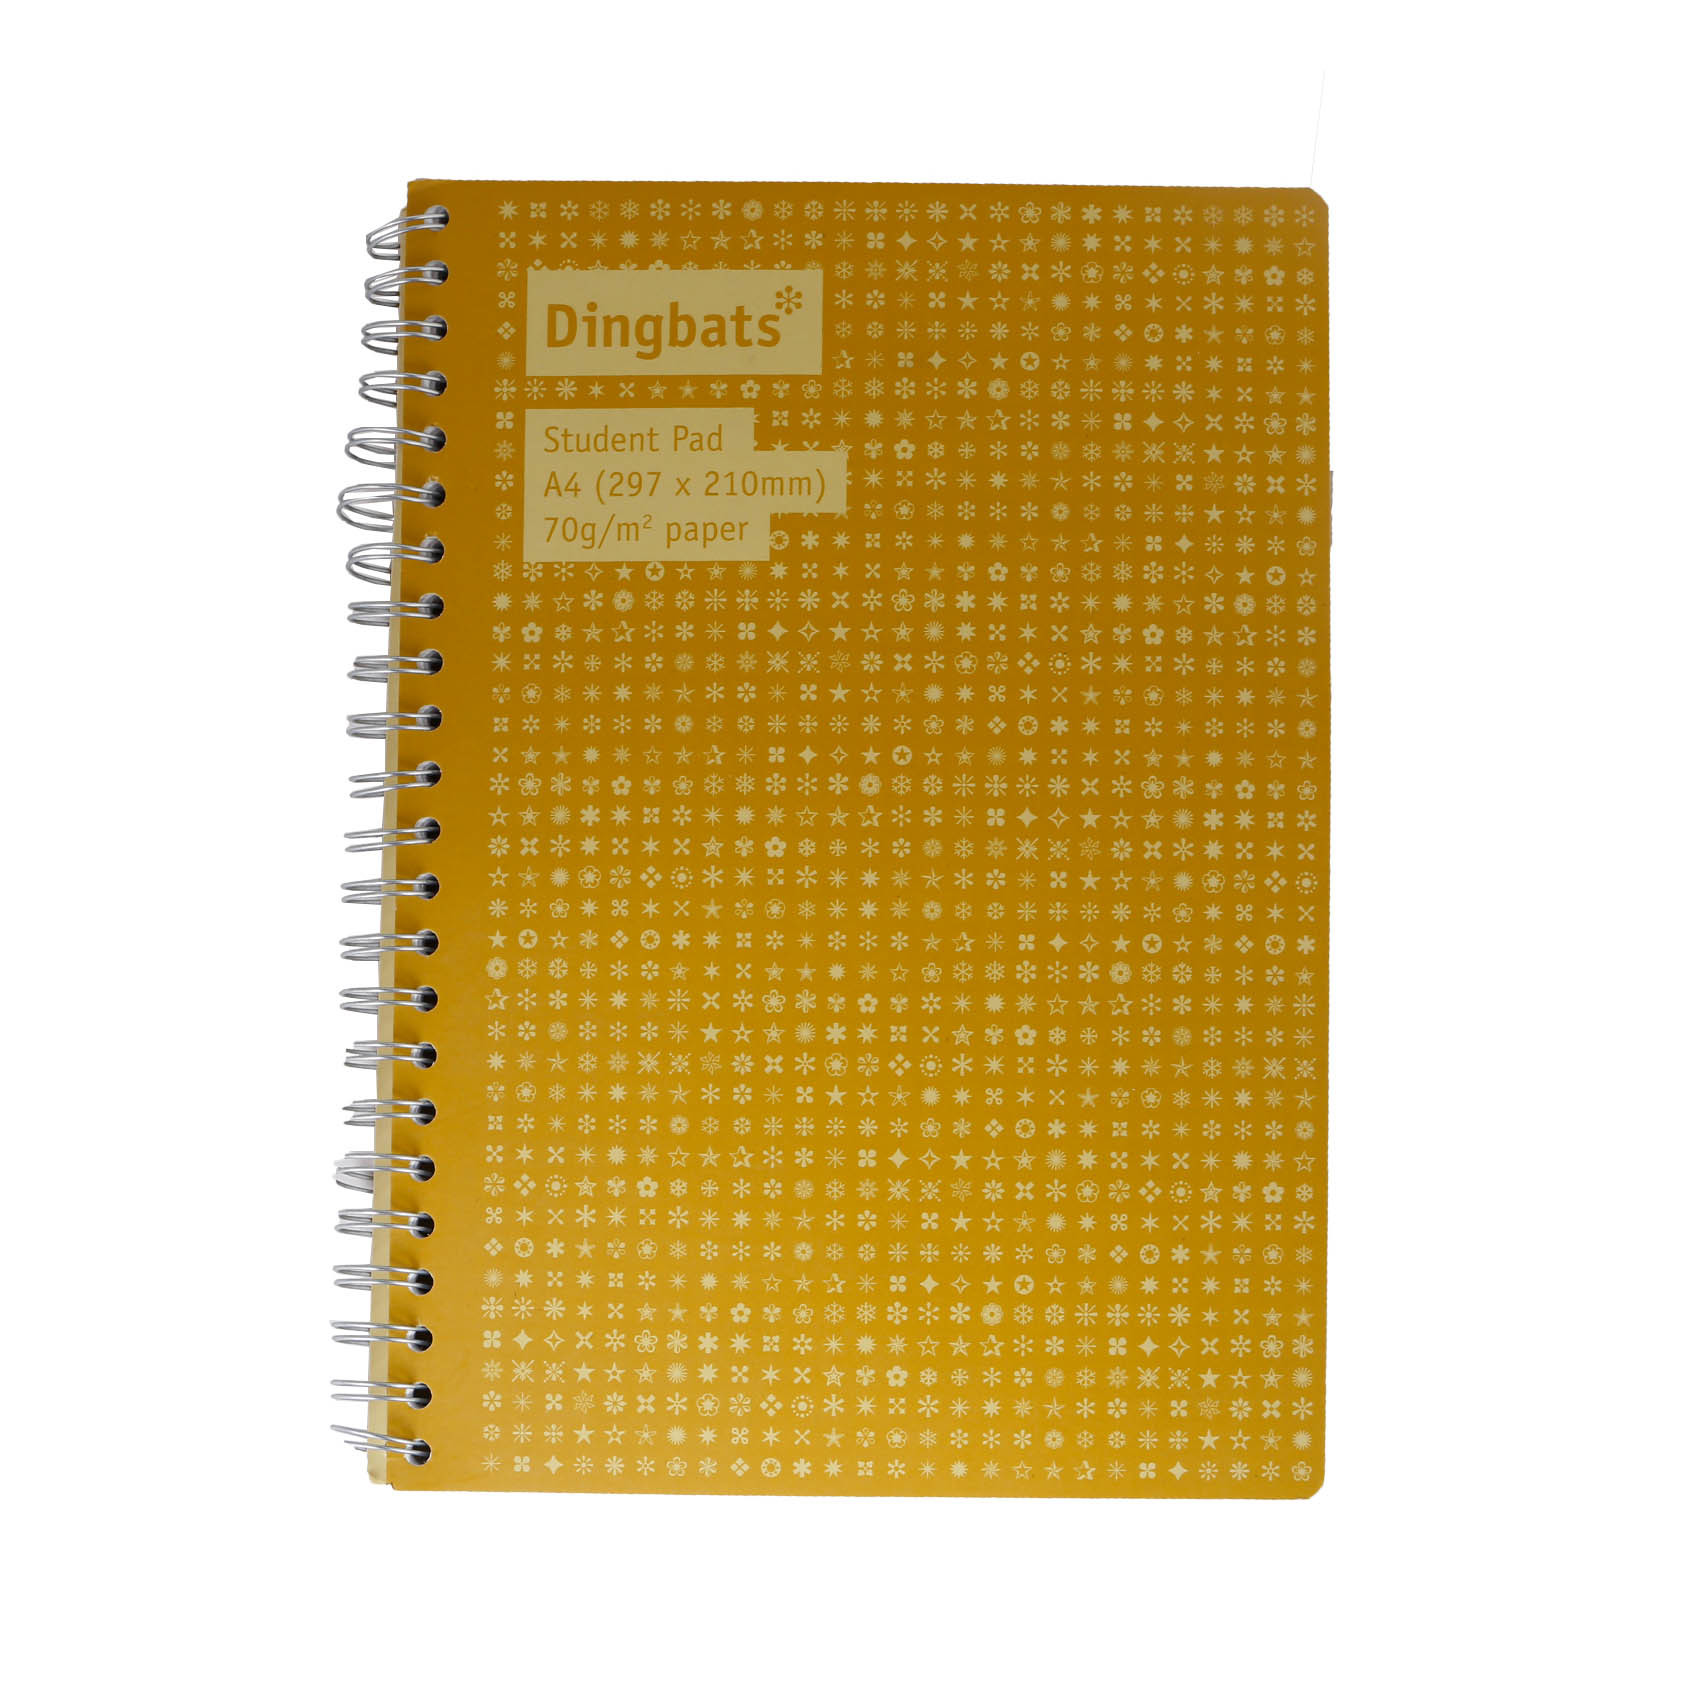 ABC NOTE BOOK A4 HARD COVER 160SHEE